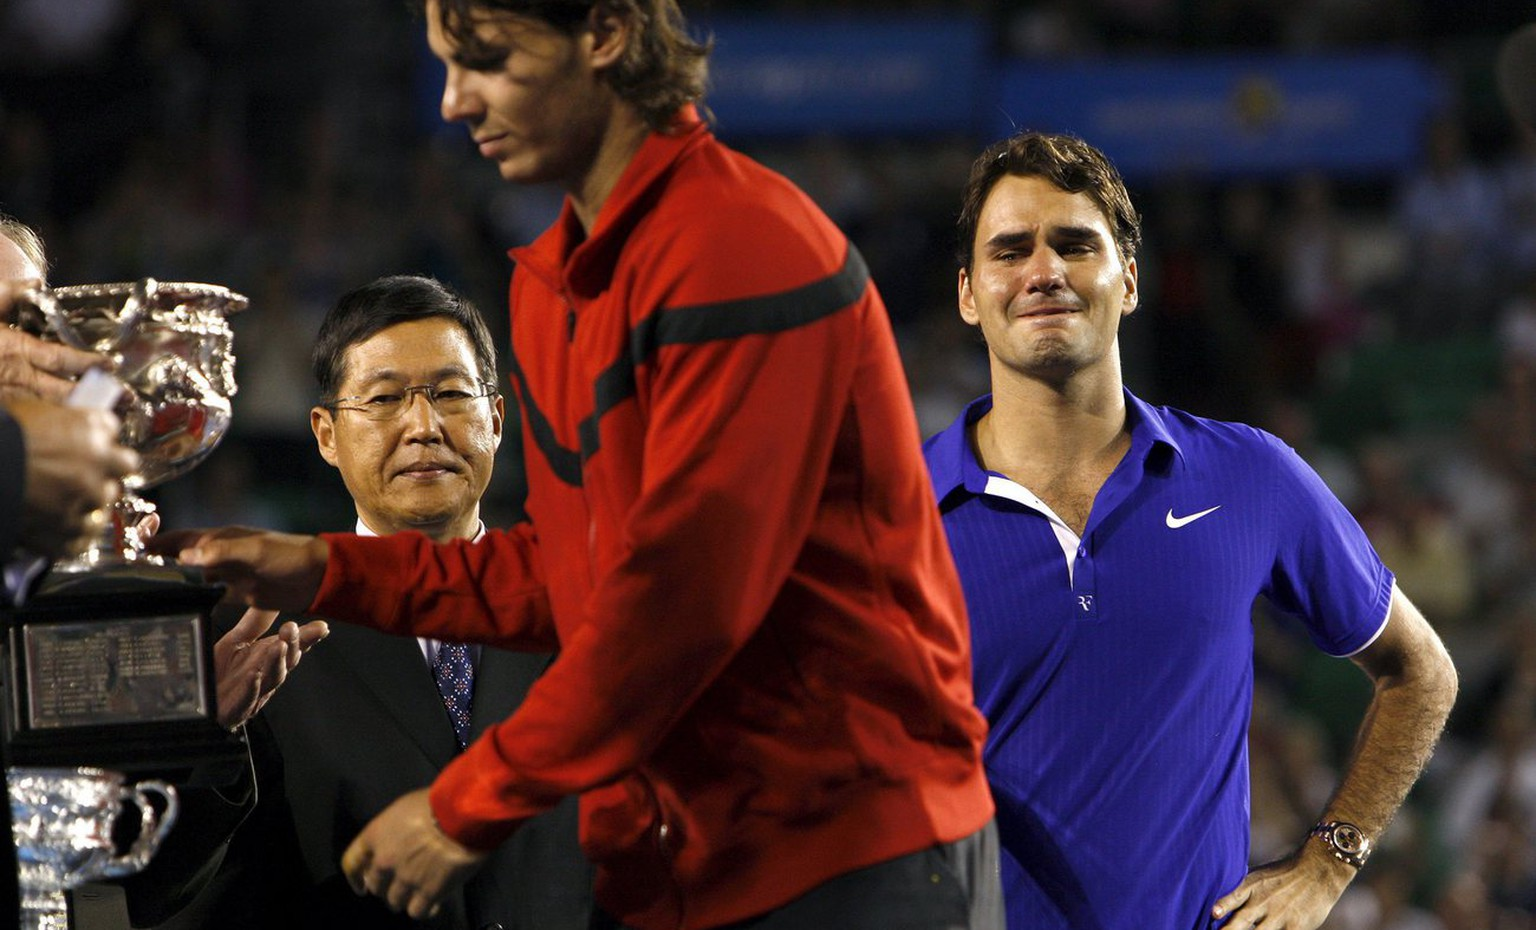 epa01621208 Swiss Roger Federer (R) looks at Spanish player Rafael Nadal receiving the winner's trophy after the men's final match at the Australian Open tennis tournament in Melbourne, 01 February 2009. Rafael Nadal won 7-5, 3-6, 7-6, 3-6, 6-2.  EPA/OLIVER WEIKEN